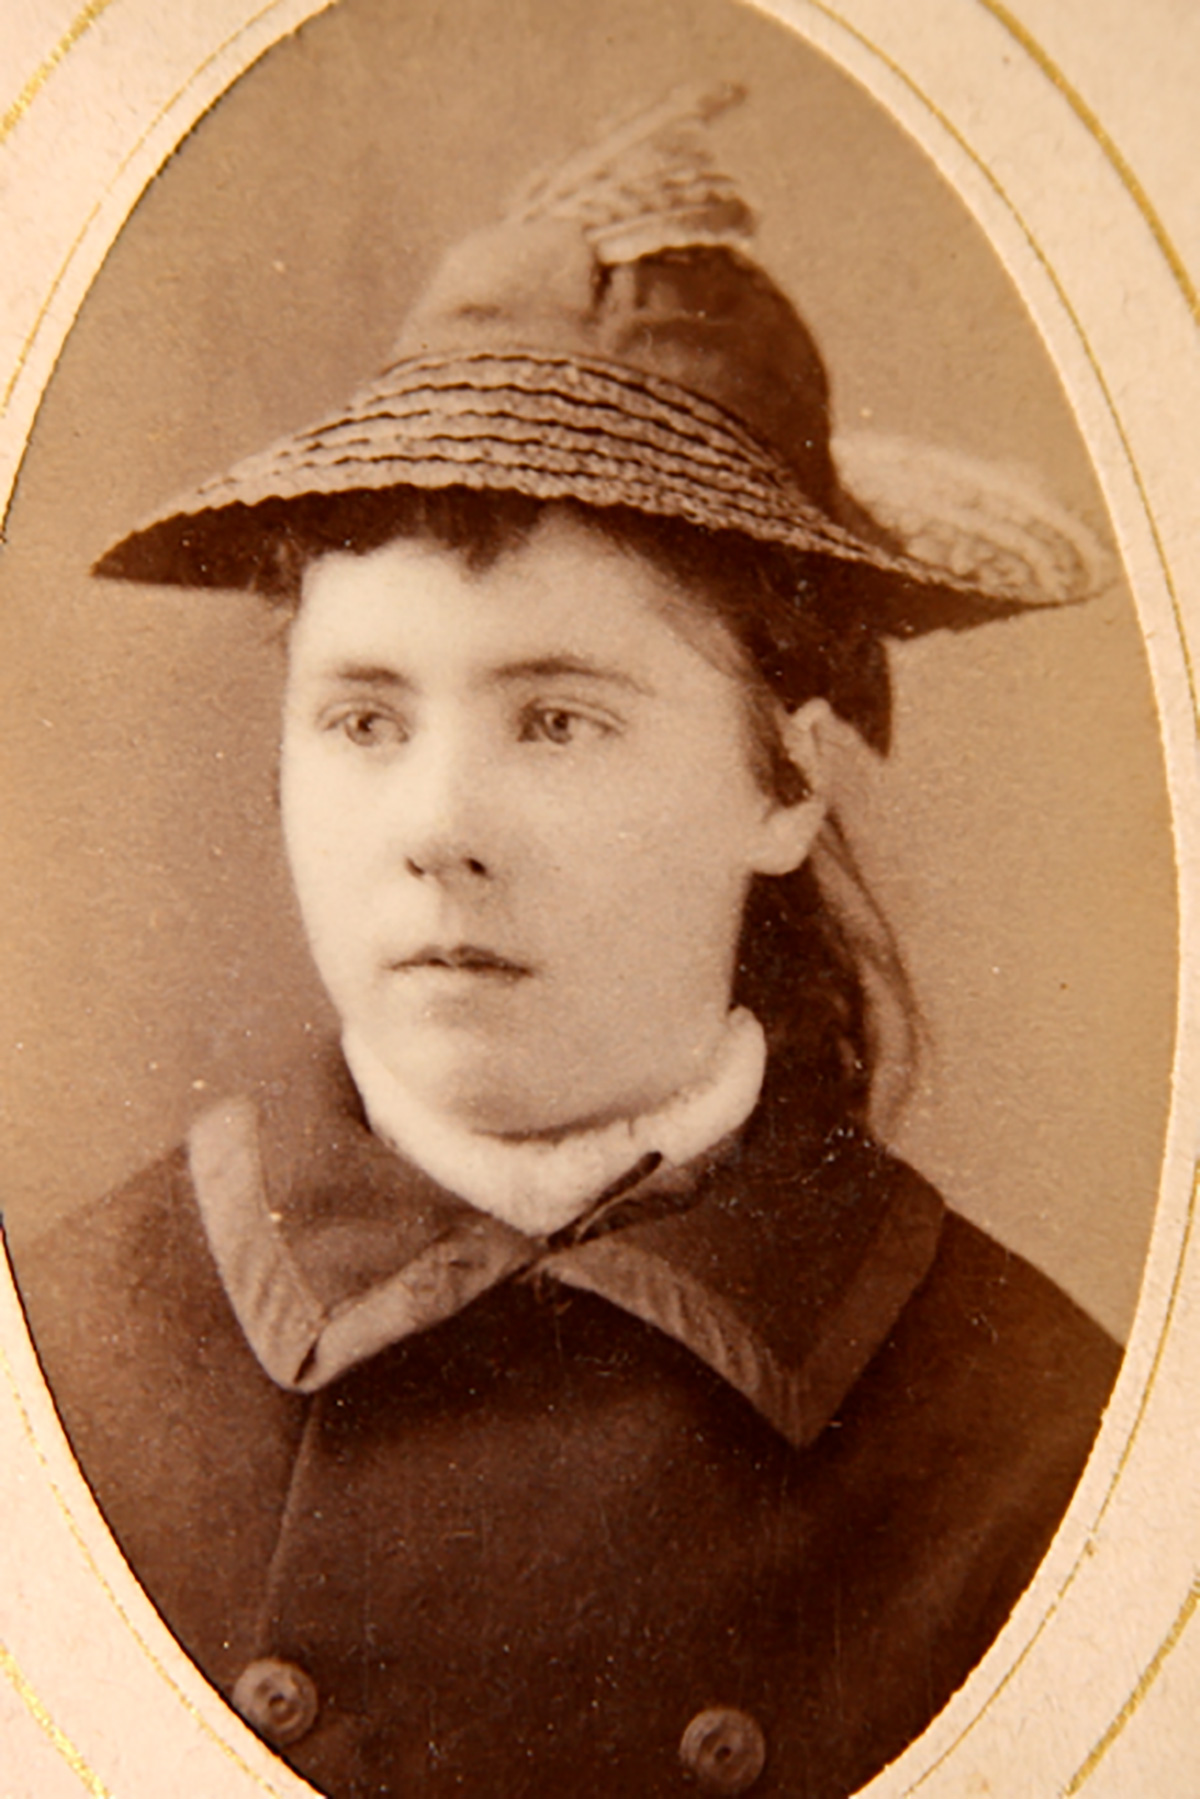 Young Lizzie Borden -- photo from lizzieandrewborden.com